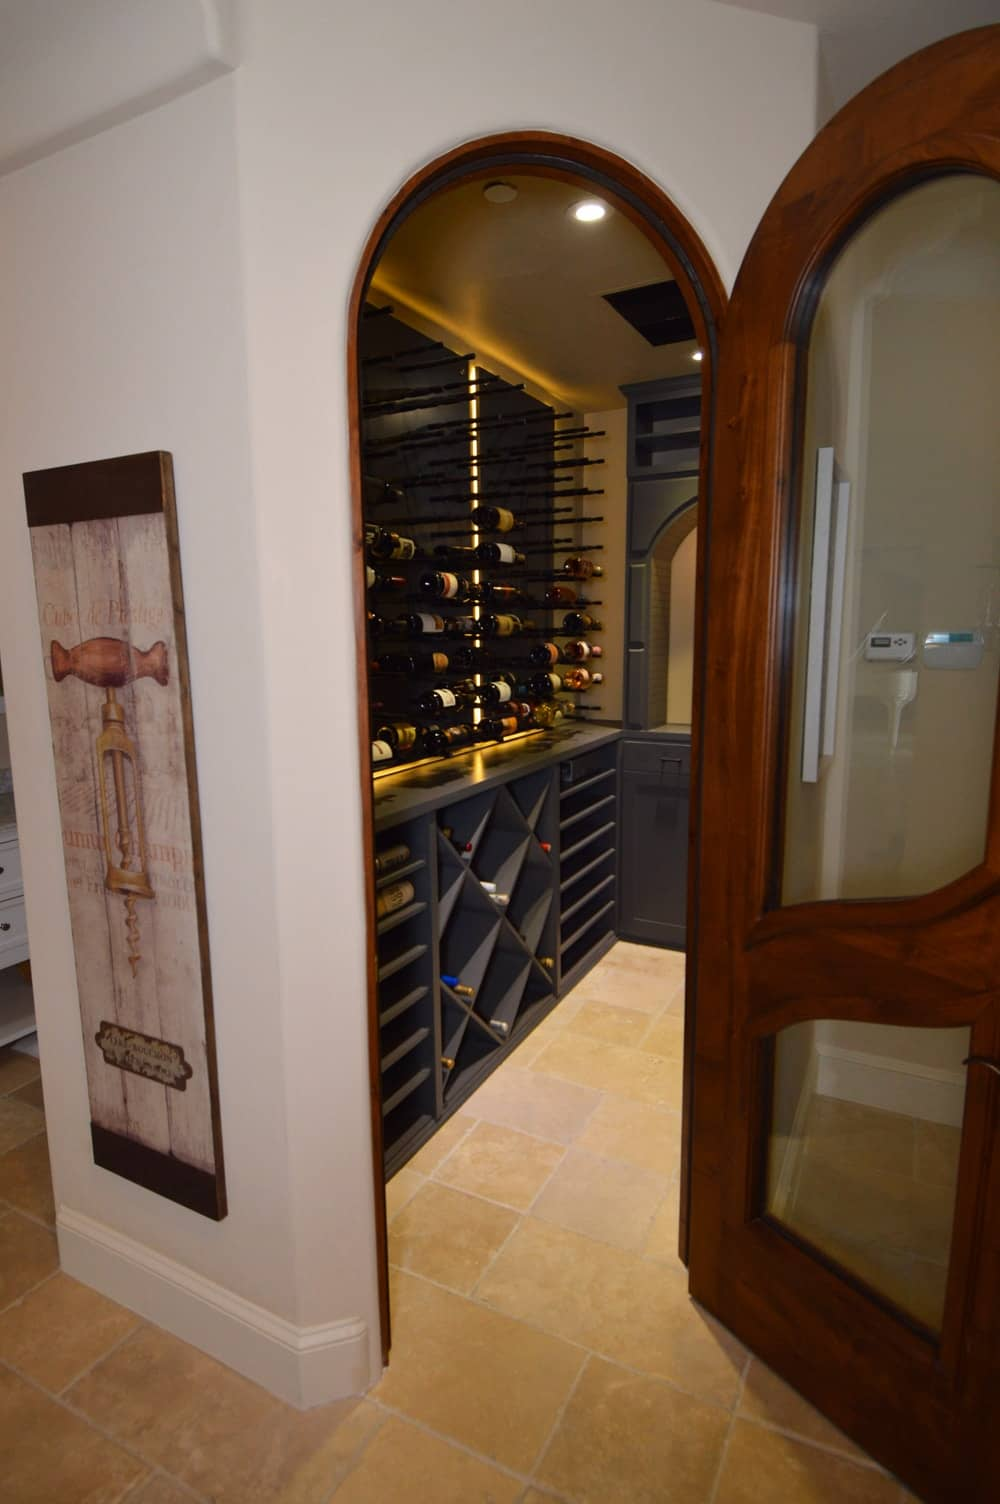 This door is equipped with a self-sealing mechanism. It helps in making ensure that there won't be any leaks or air gaps from the entrance of the wine cellar.